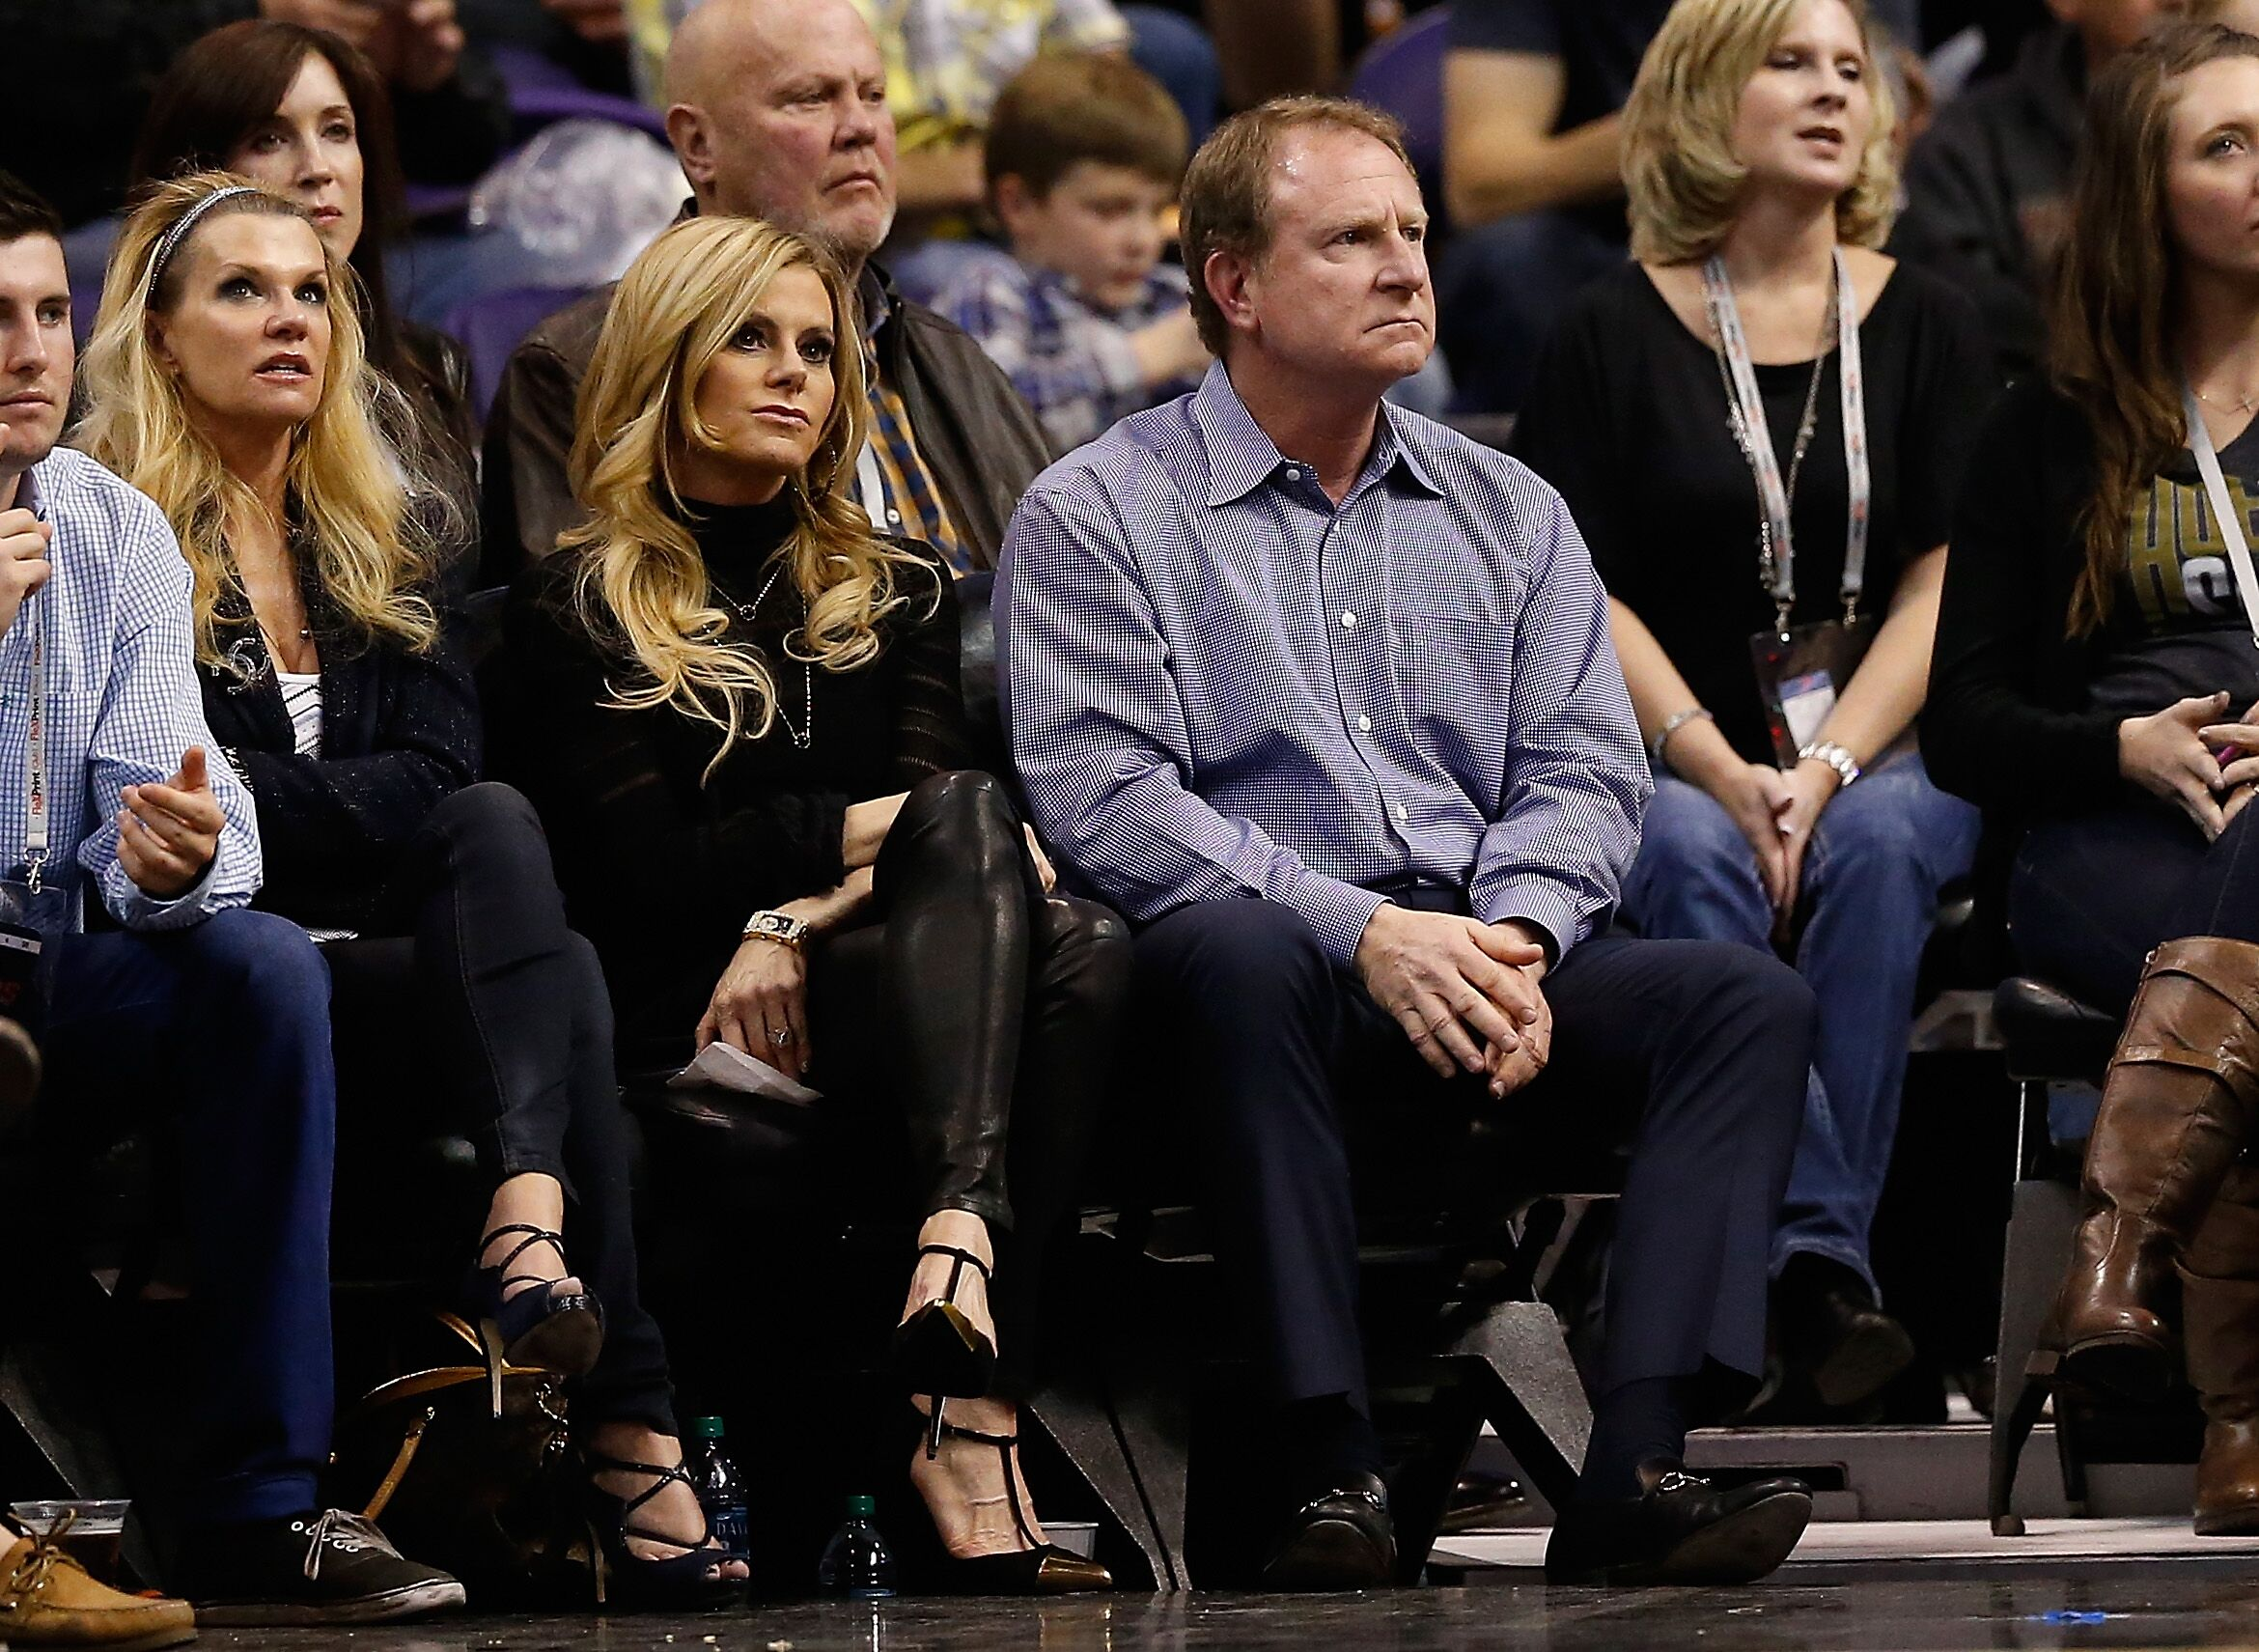 Robert Sarver does not understand that the Phoenix Suns are not his